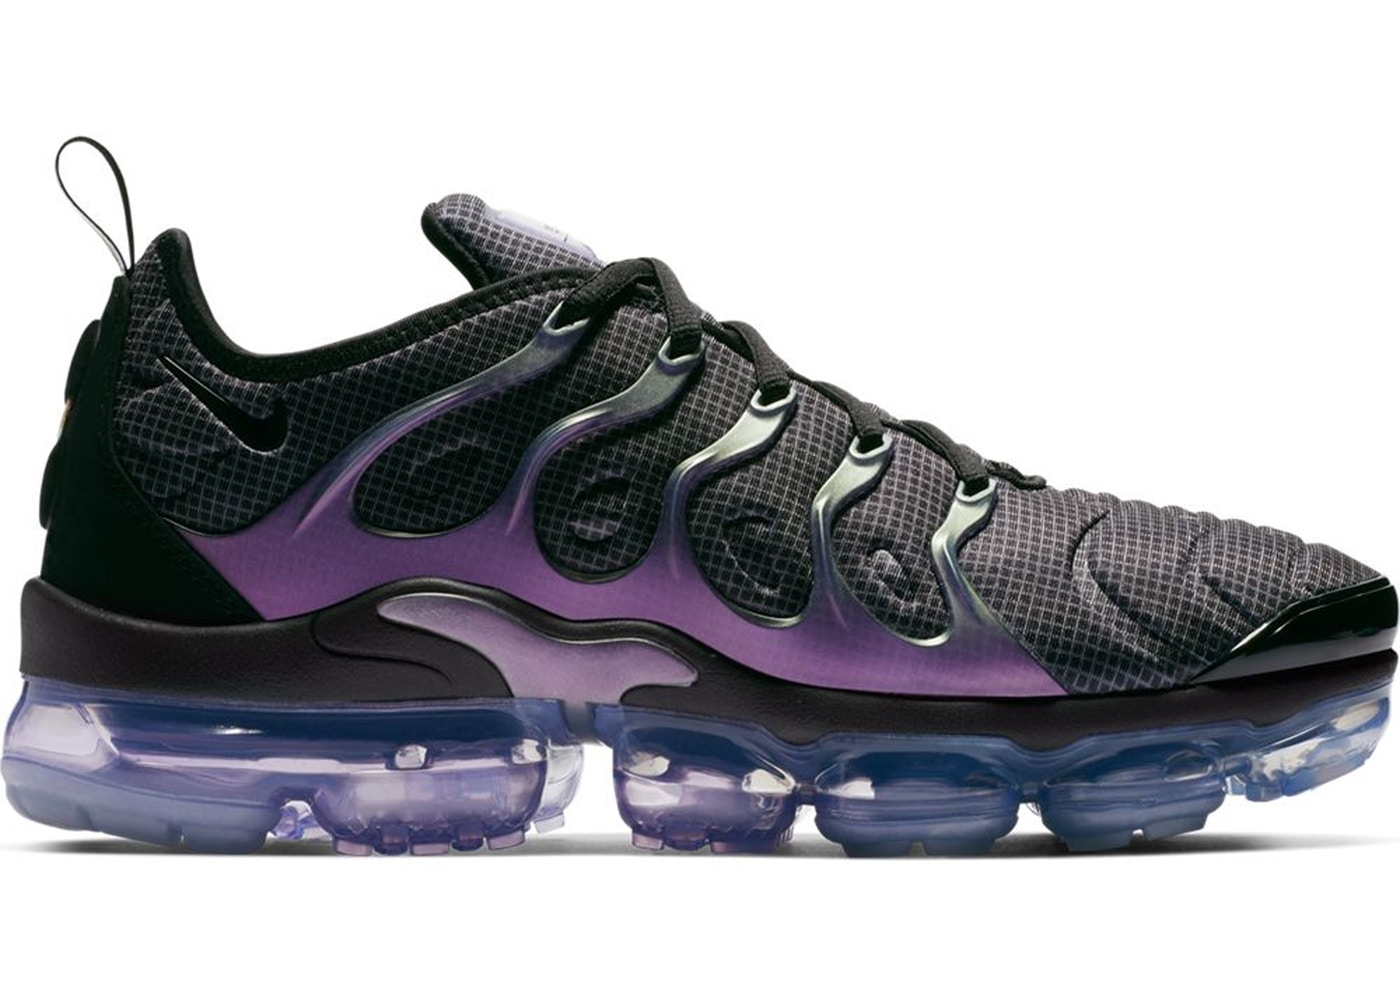 ナイキ NIKE エア スニーカー 【 AIR VAPORMAX PLUS EGGPLANT BLACK DARK GREYALUMINUMBLACK 】 メンズ